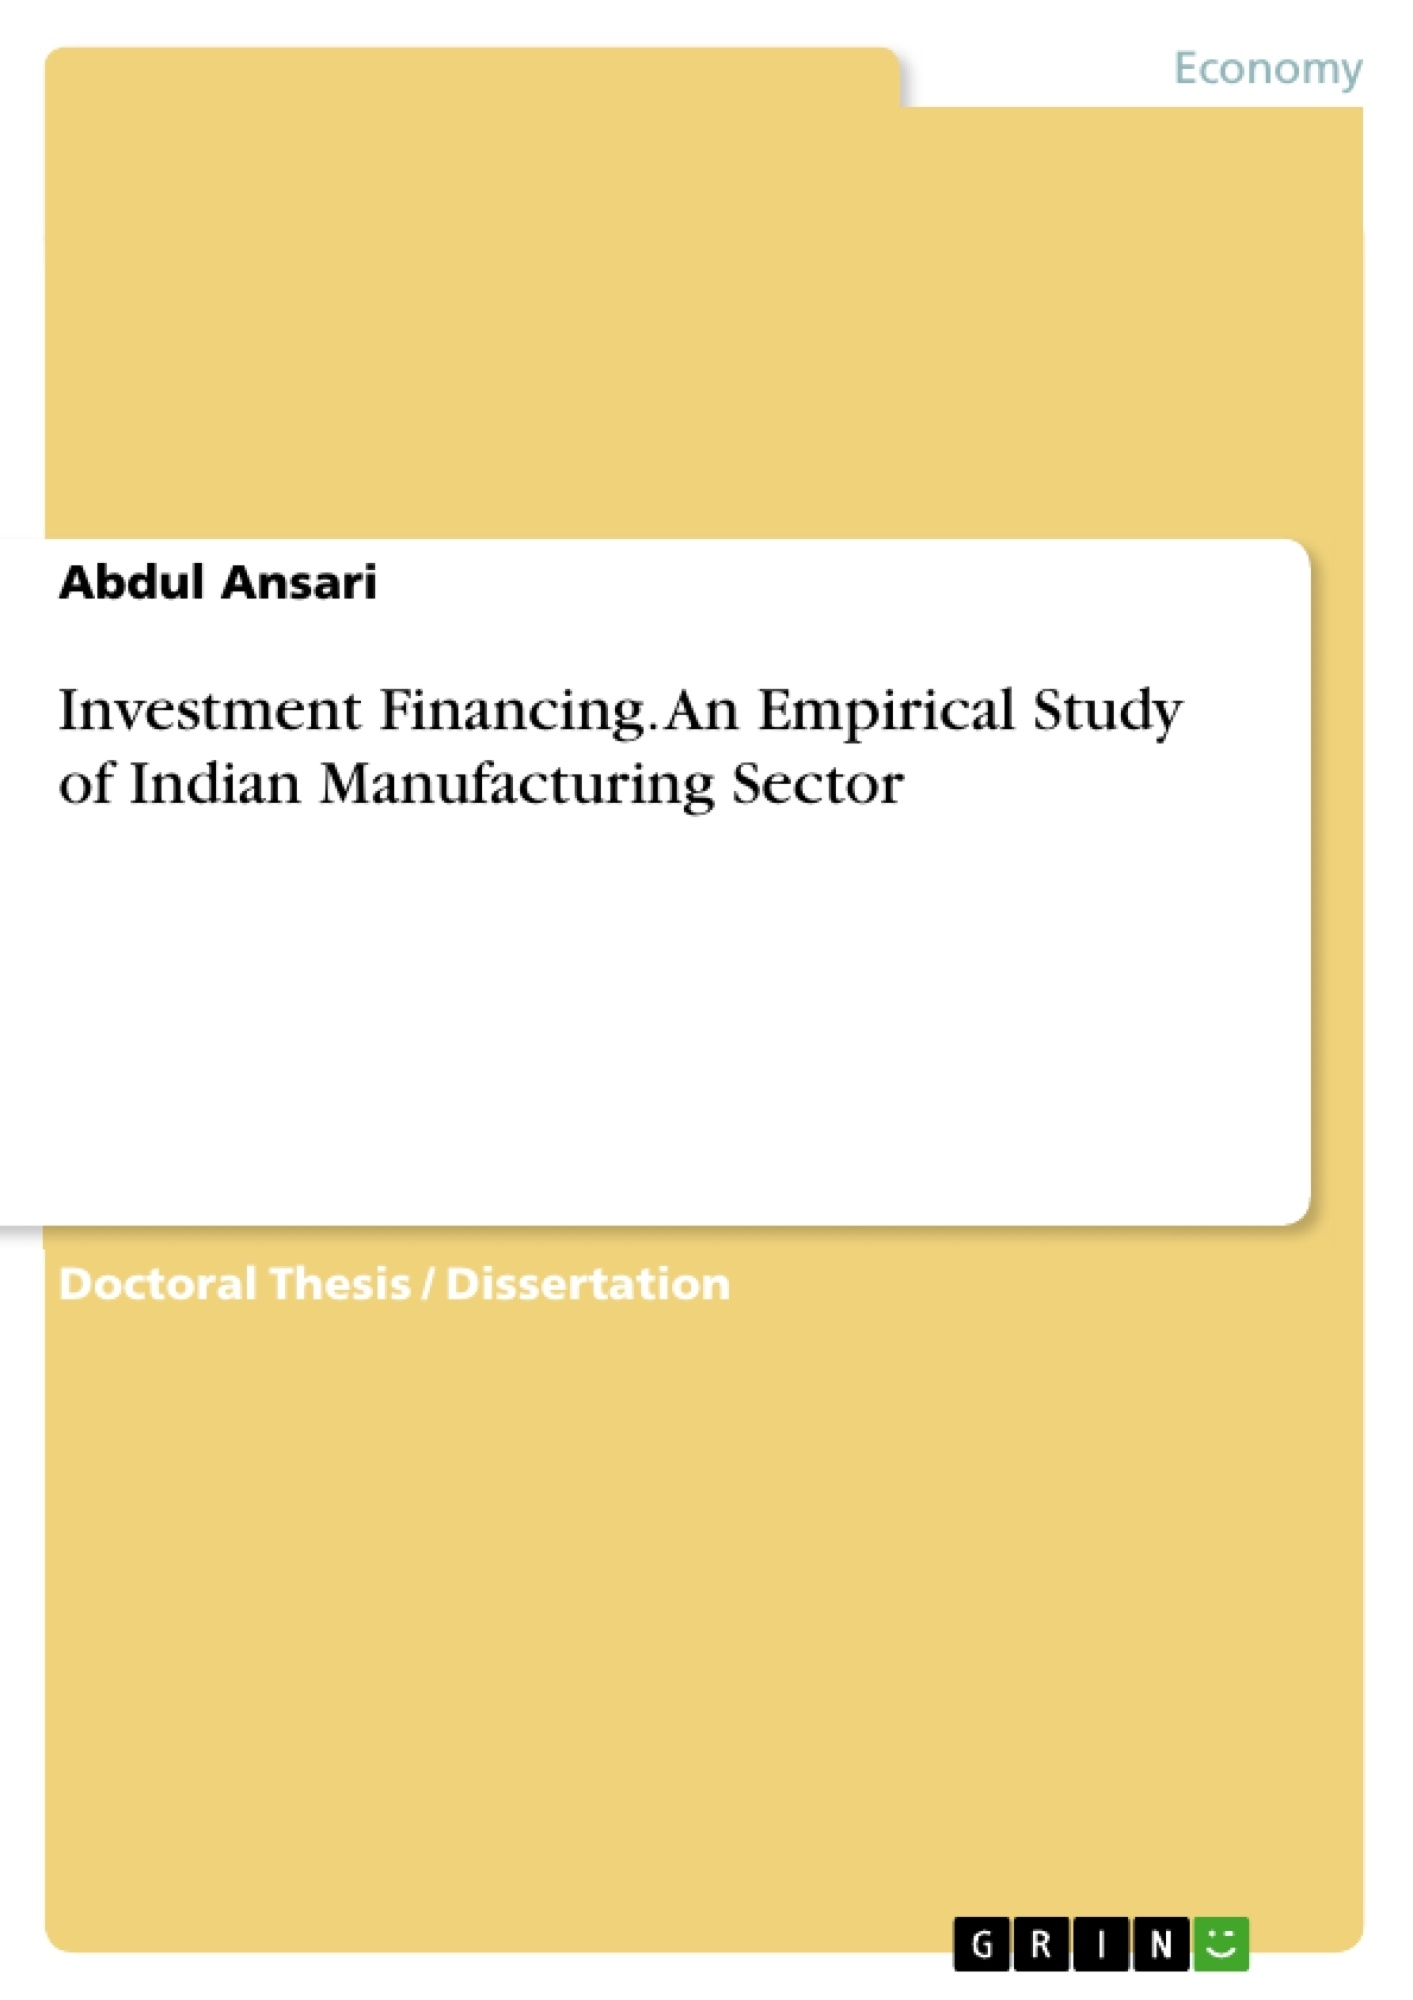 Title: Investment Financing. An Empirical Study of Indian Manufacturing Sector